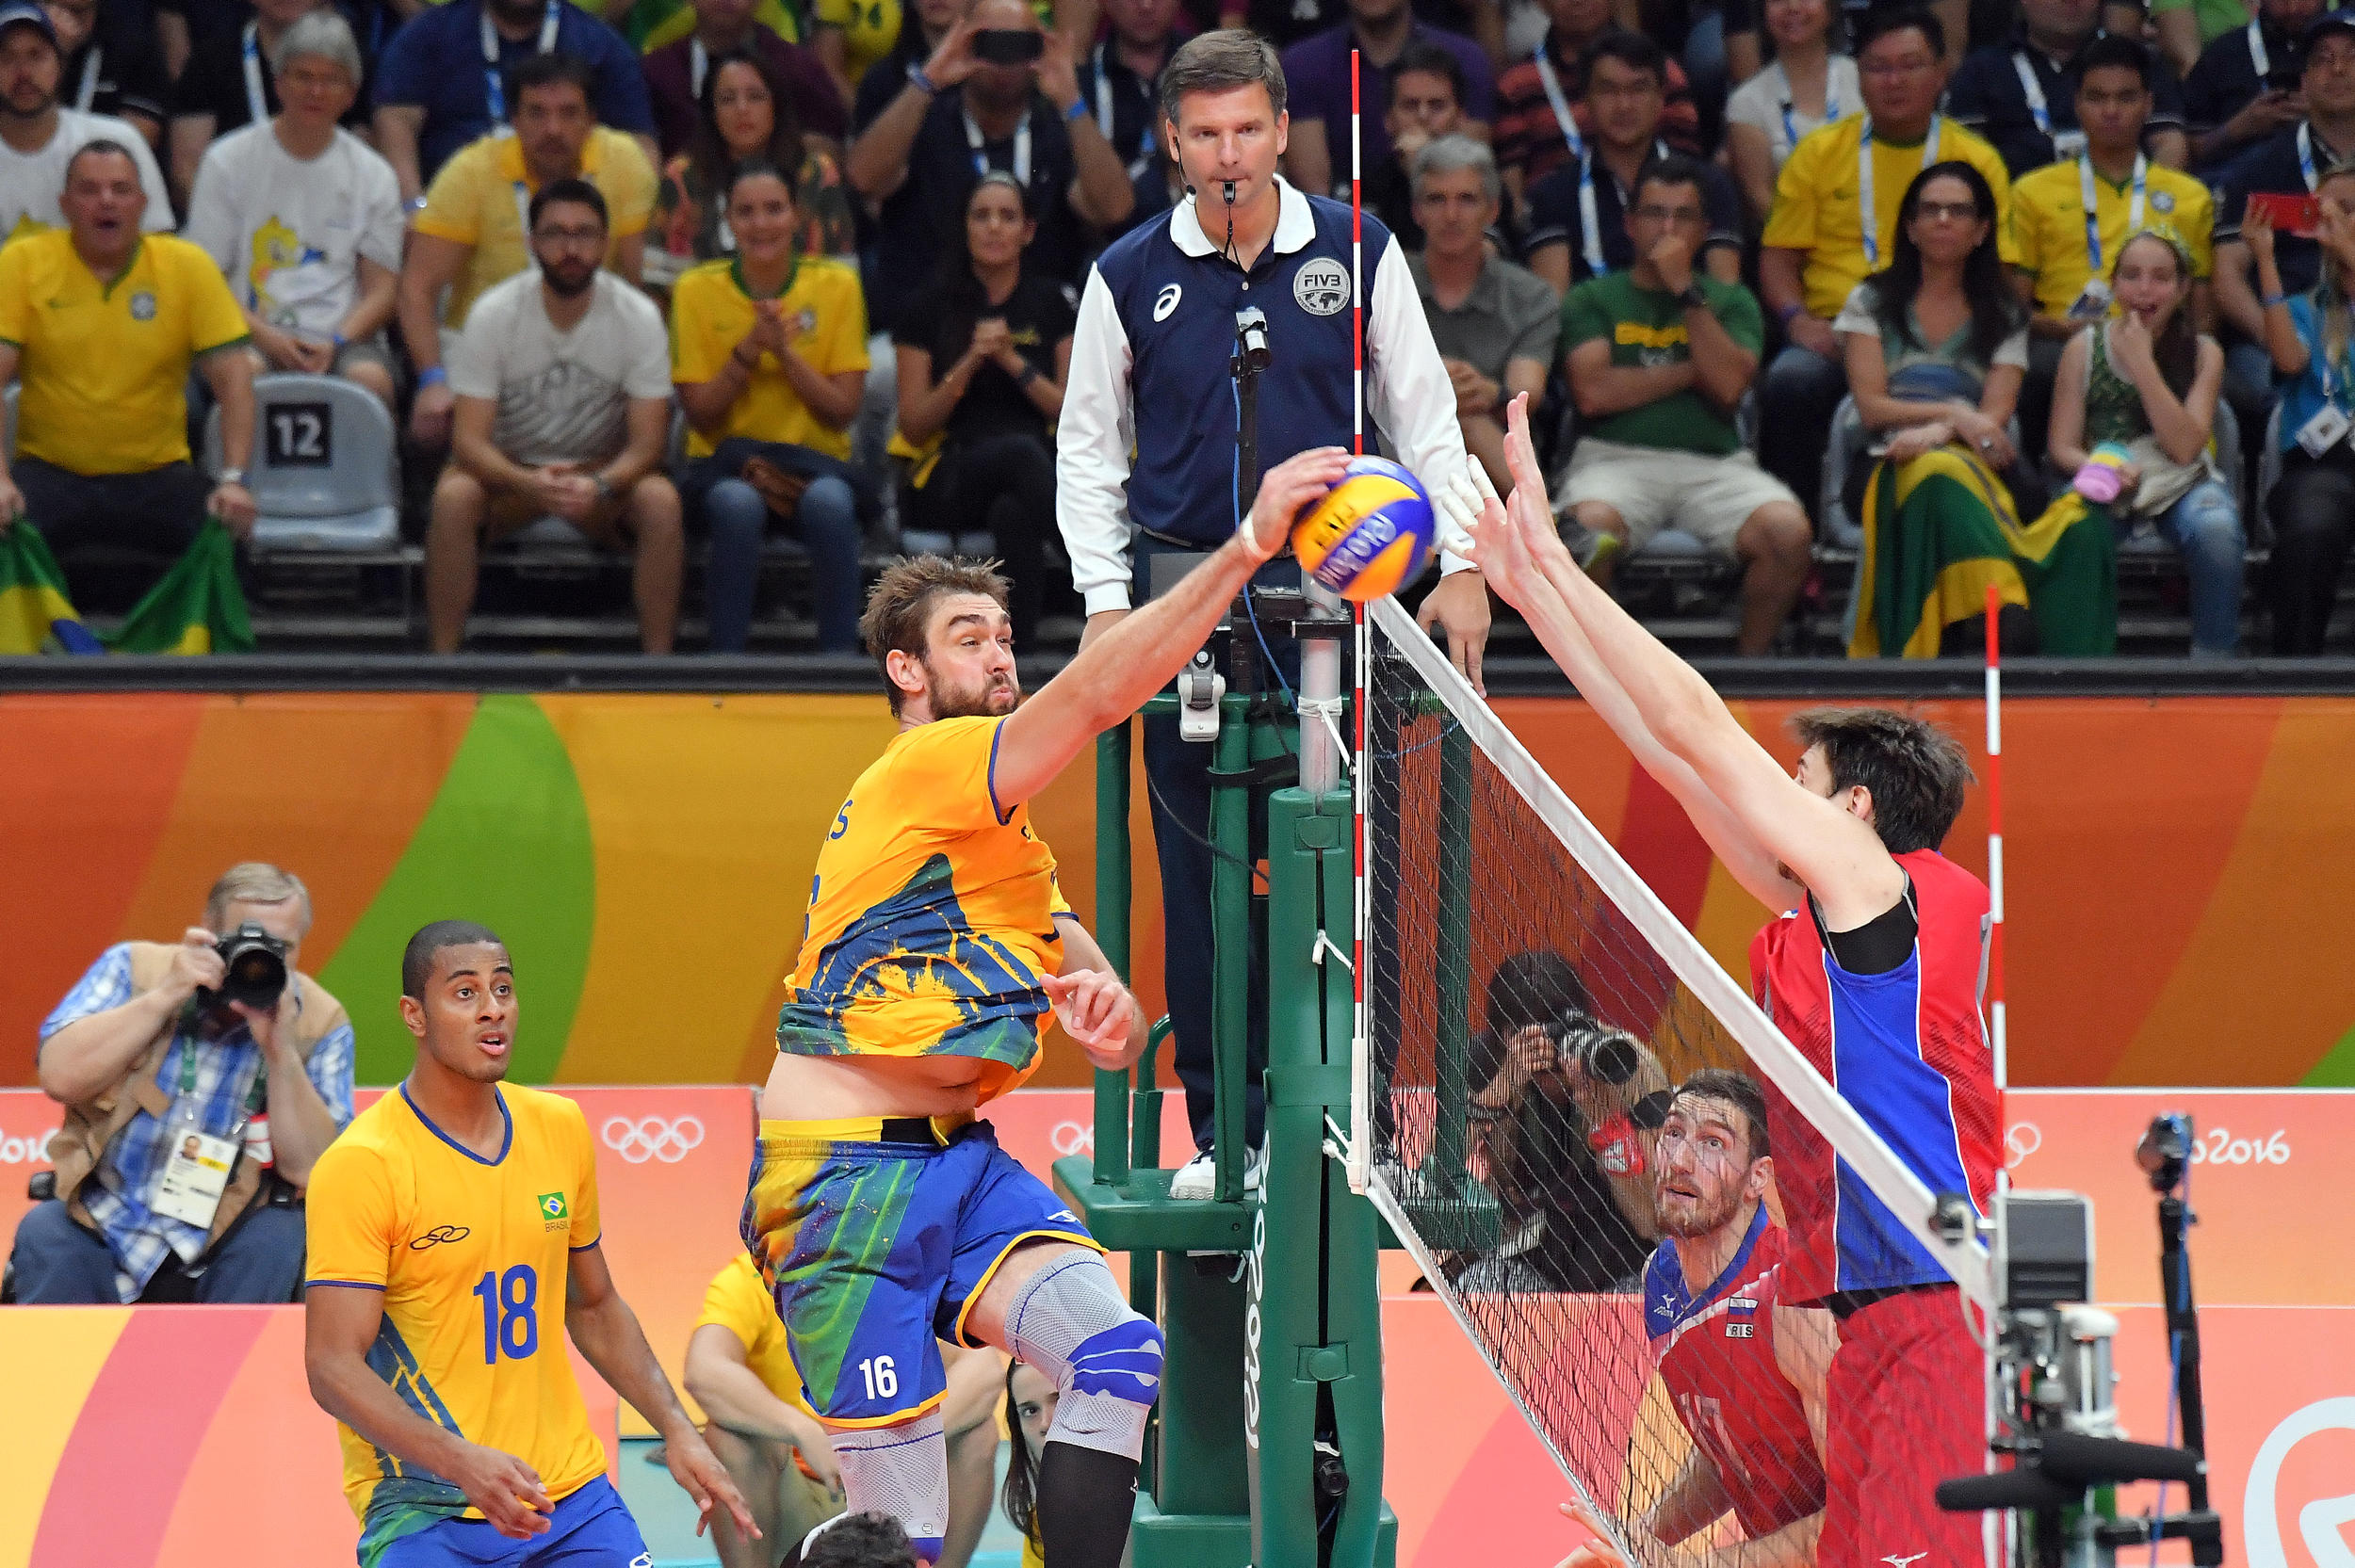 http://www.fivb.org/Vis2009/Images/GetImage.asmx?No=201653487&maxSize=960